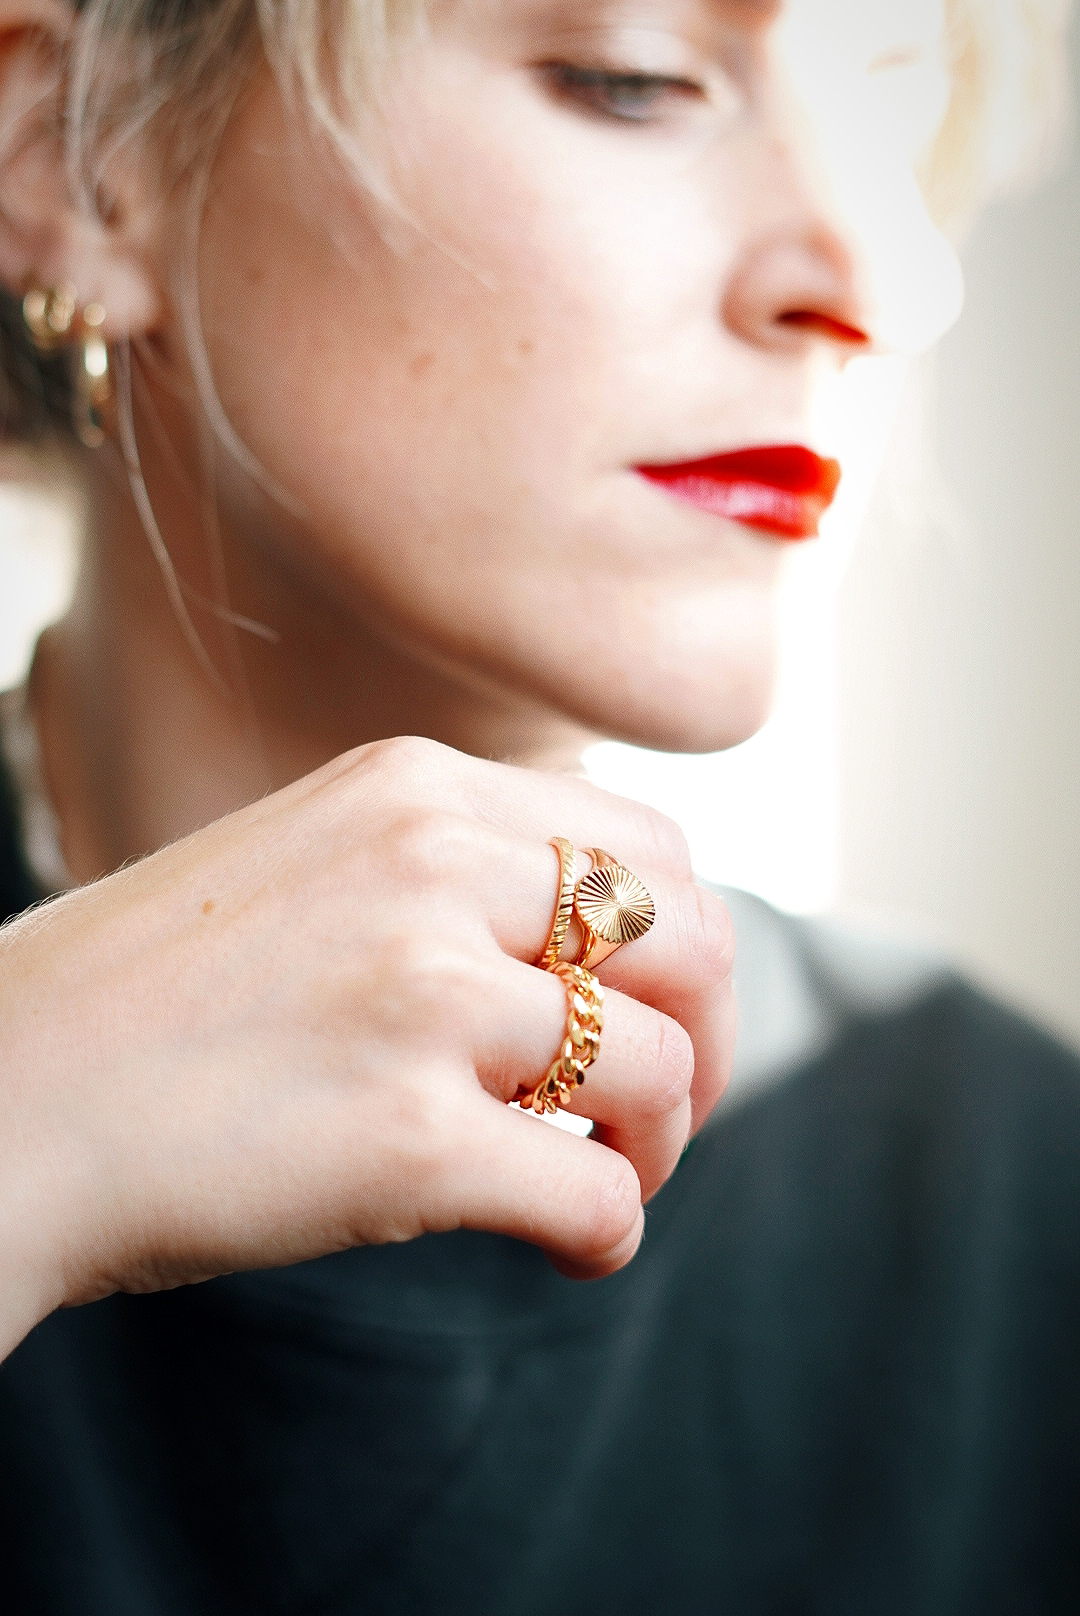 Amy's hand is in focus in front of her face which is not, on her hand are three gold rings; one chain linked, one plain band and one signet ring